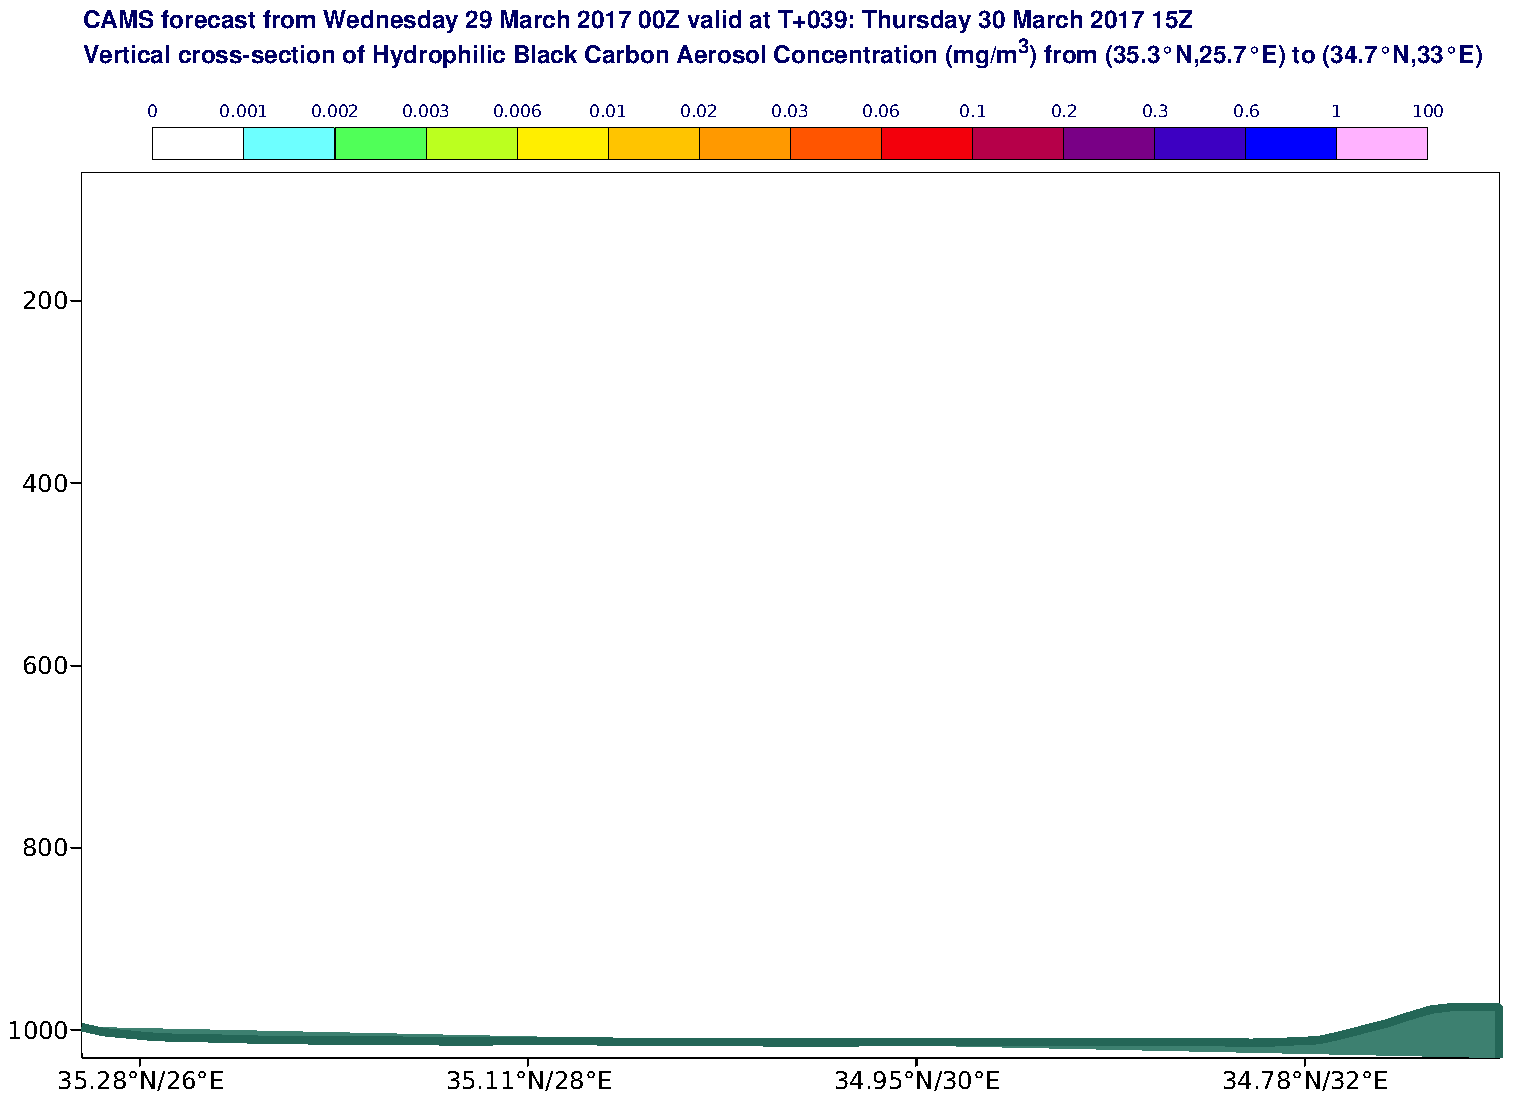 Vertical cross-section of Hydrophilic Black Carbon Aerosol Concentration (mg/m3) valid at T39 - 2017-03-30 15:00